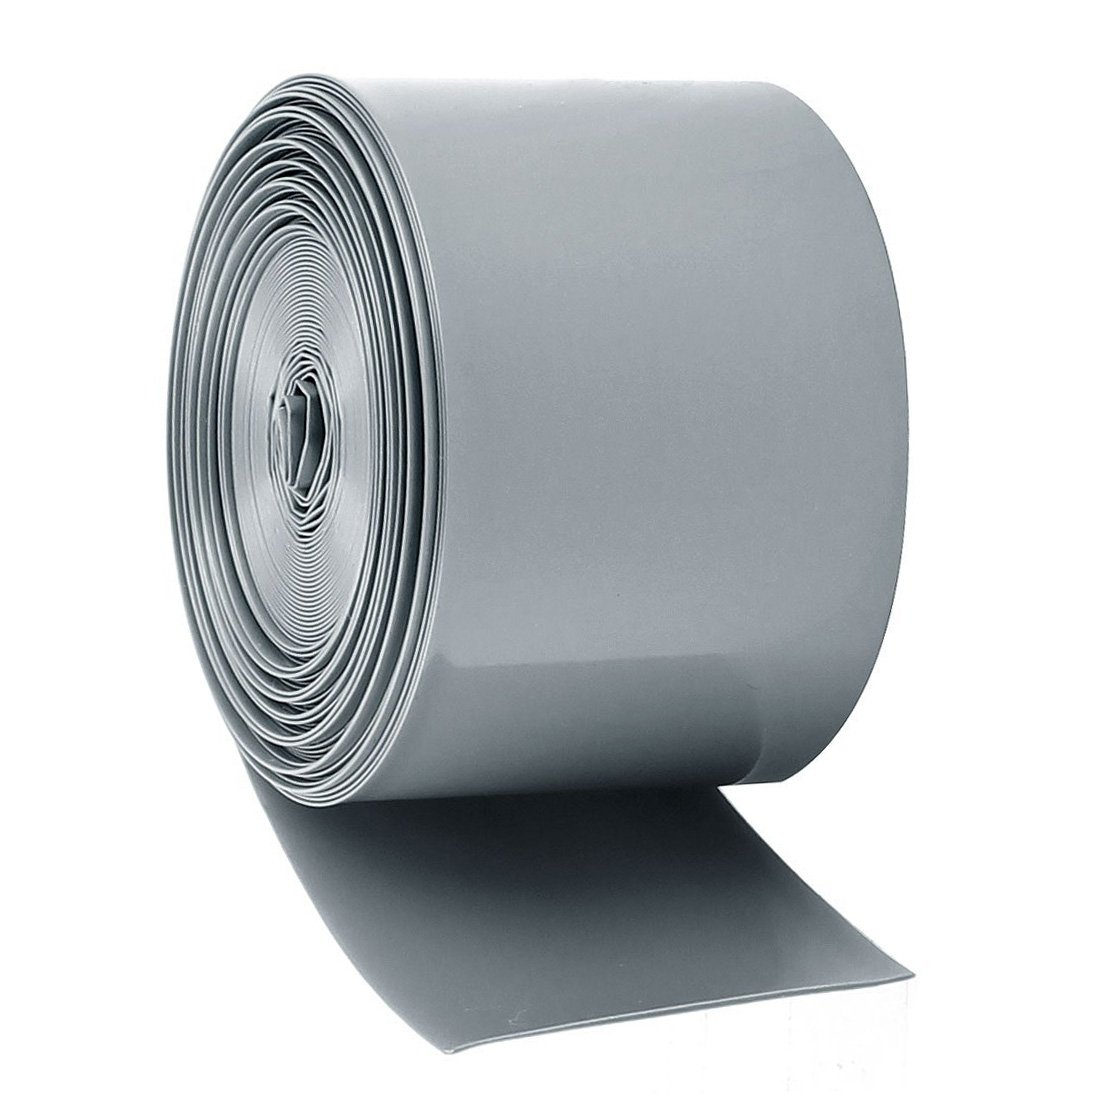 10M 29.5mm PVC Gaine thermoretractable pour 1 x 18650 batterie gris R PVC Gaine thermoretractable SODIAL